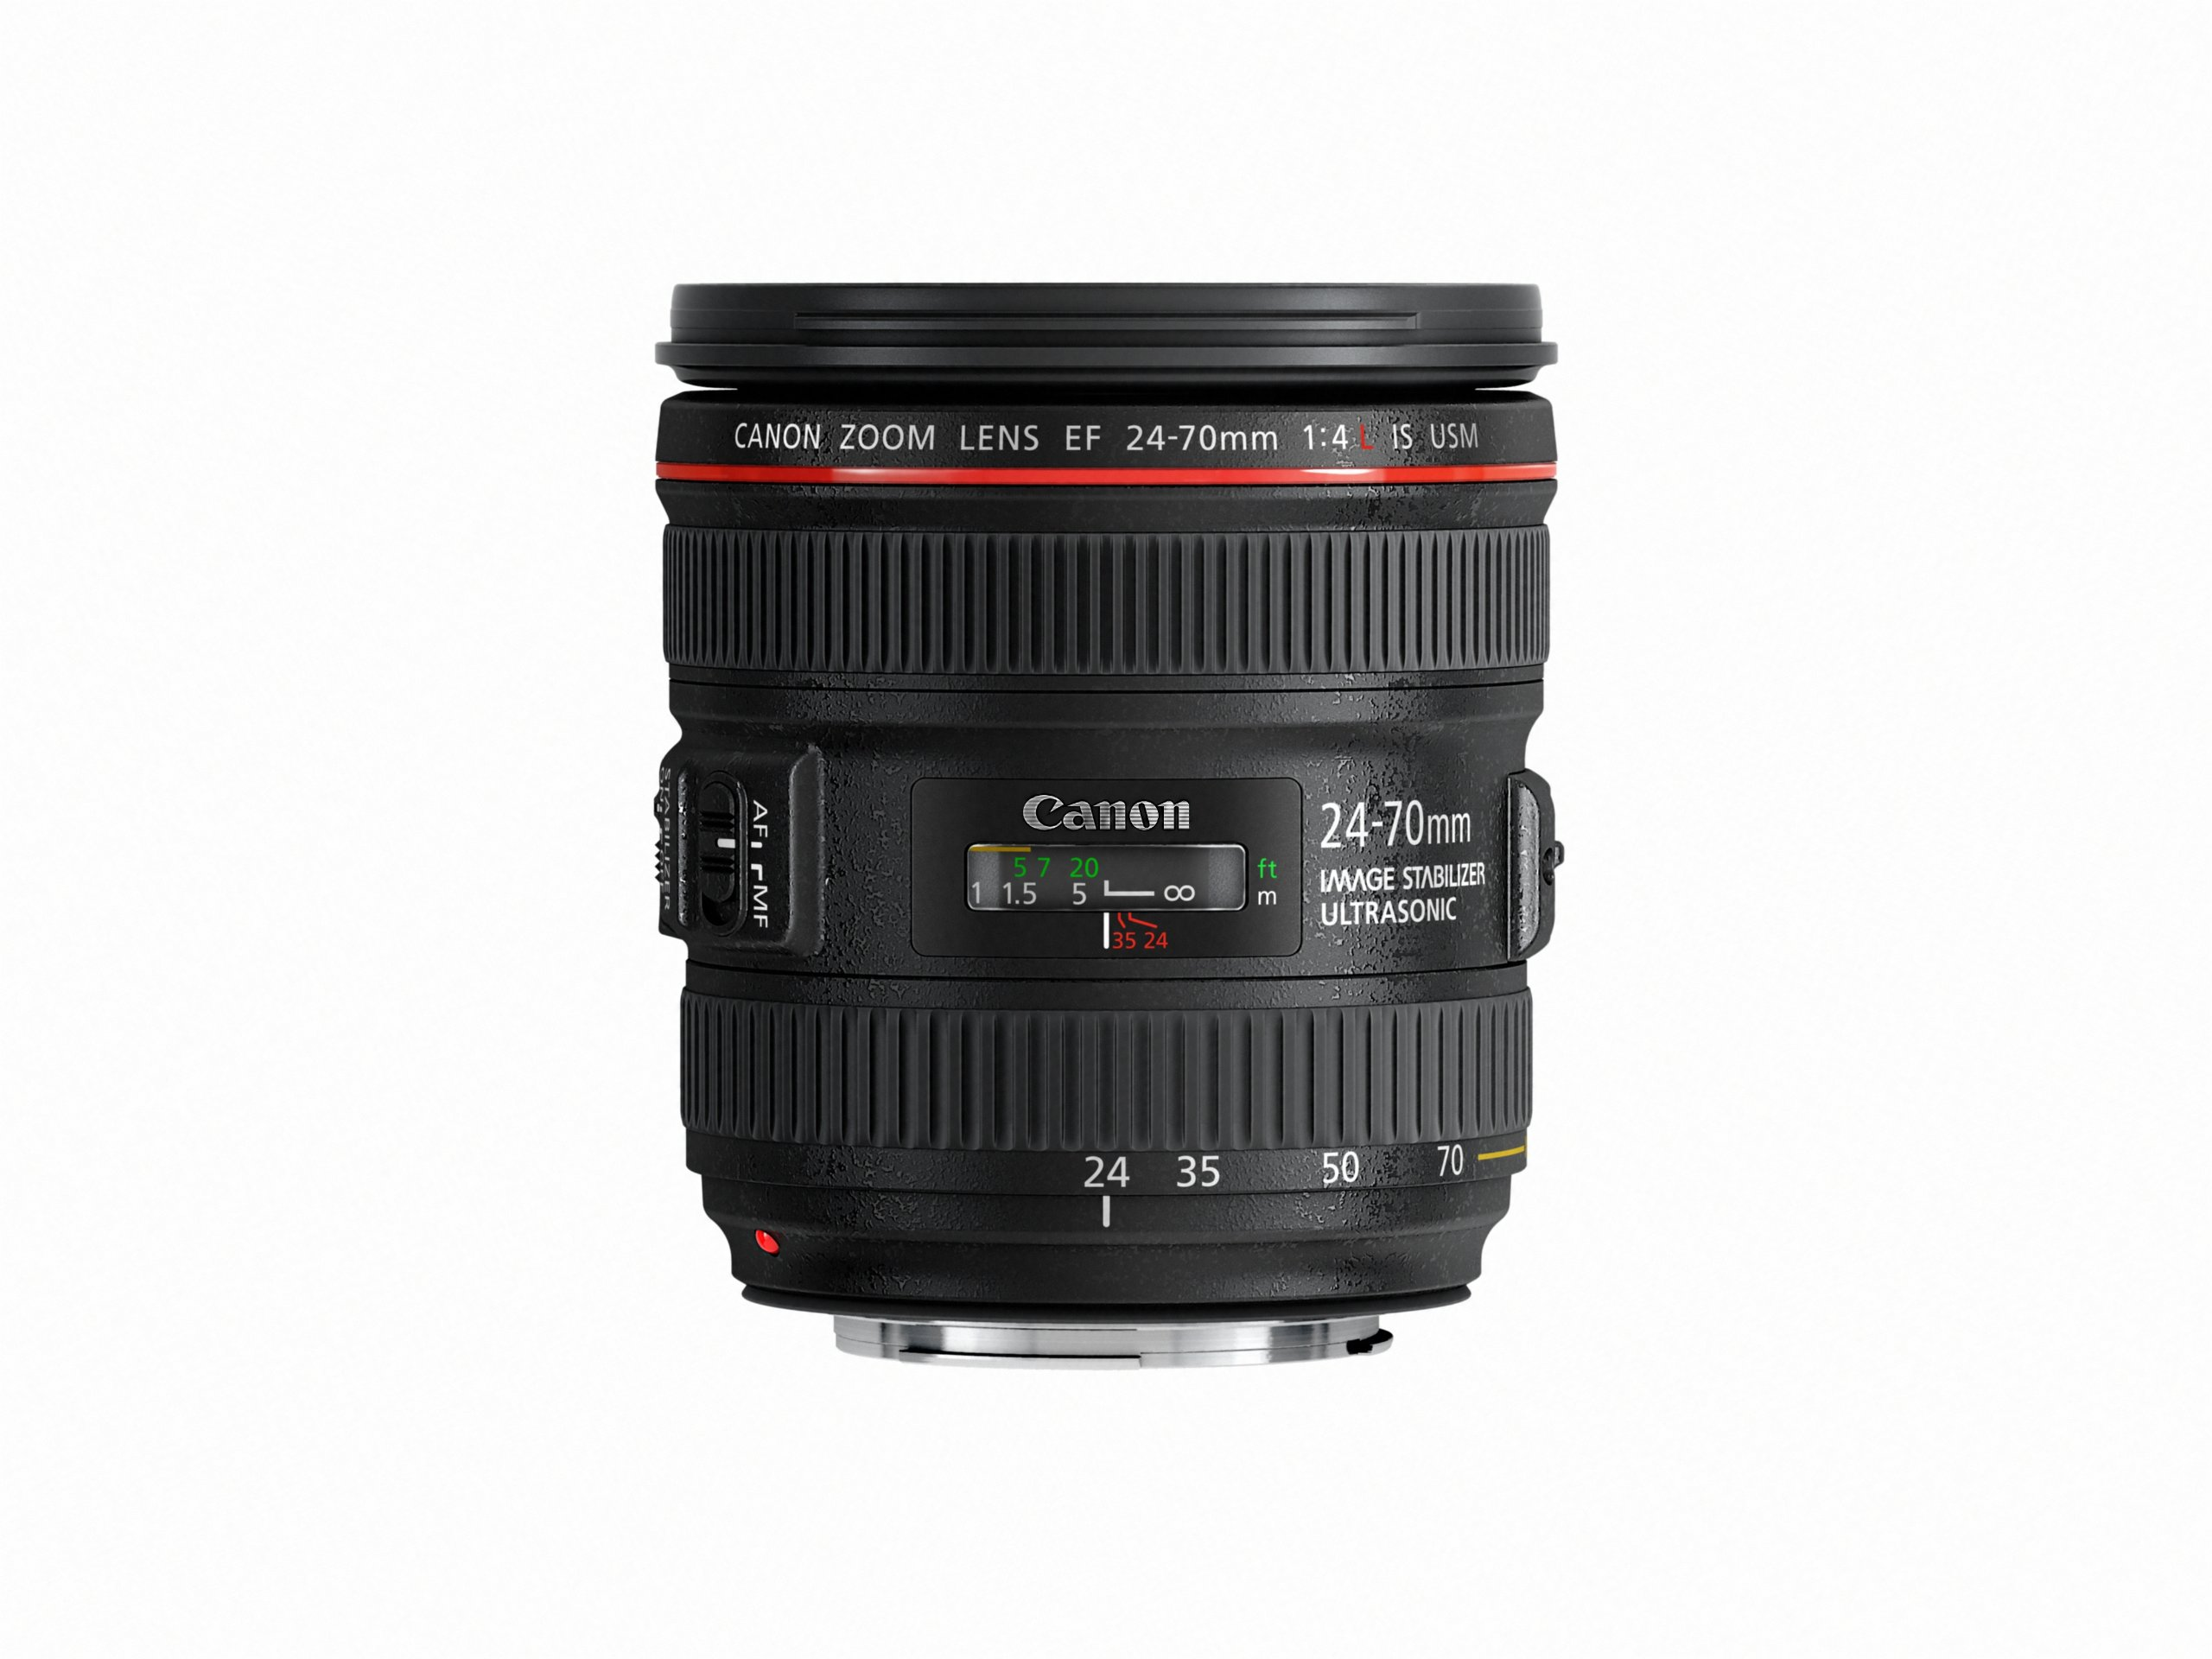 Canon EF 24-70mm f/4.0L IS USM Standard Zoom Lens by Canon